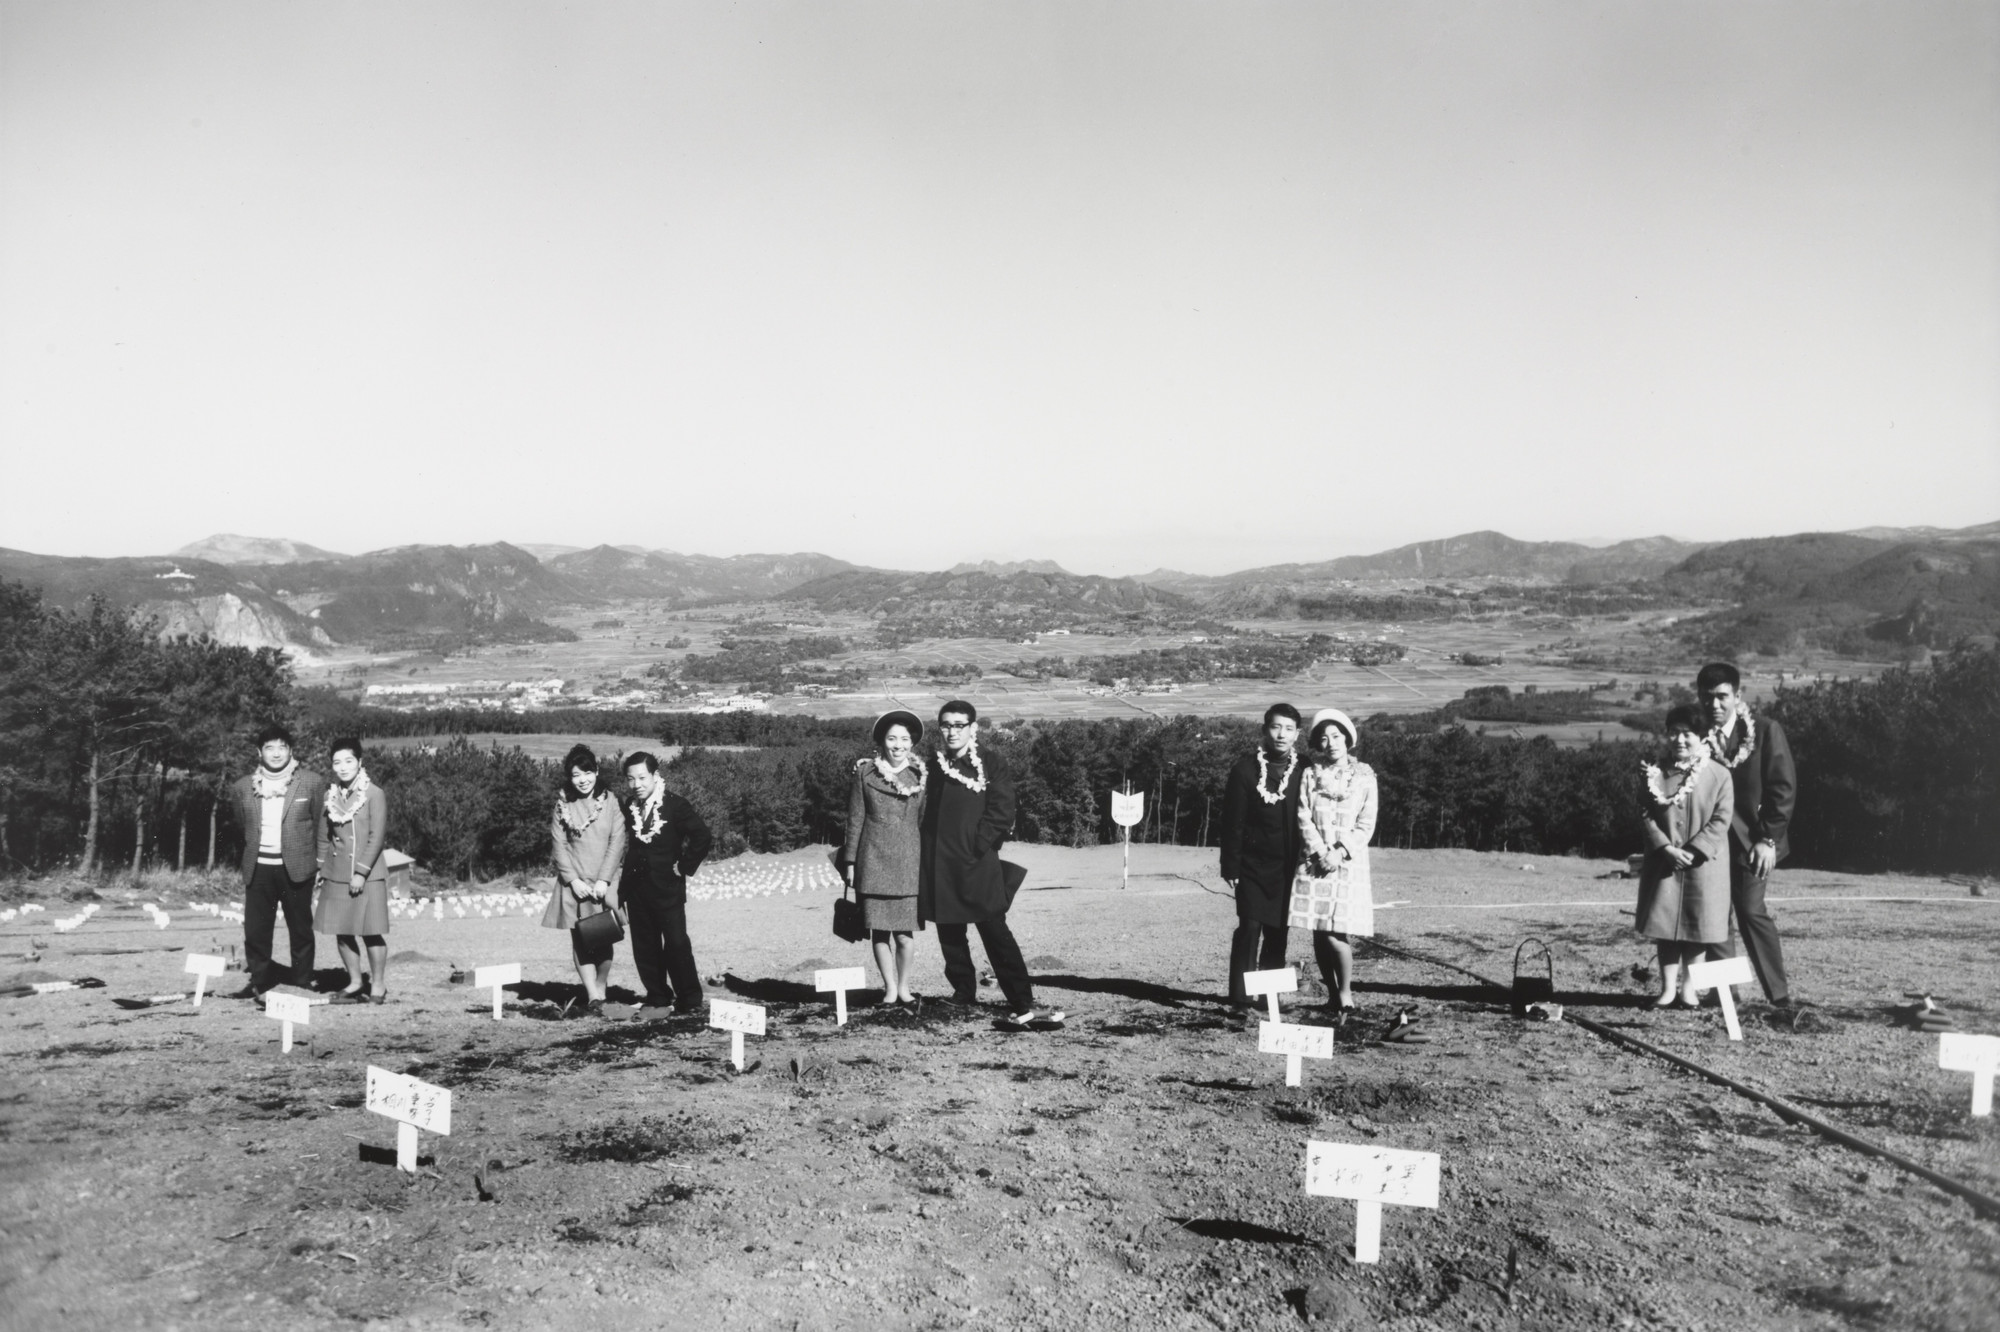 Ryoji Akiyama. Newlyweds After Planting Memorial Trees on the Slope of a Mountain, Kagoshima. 1970